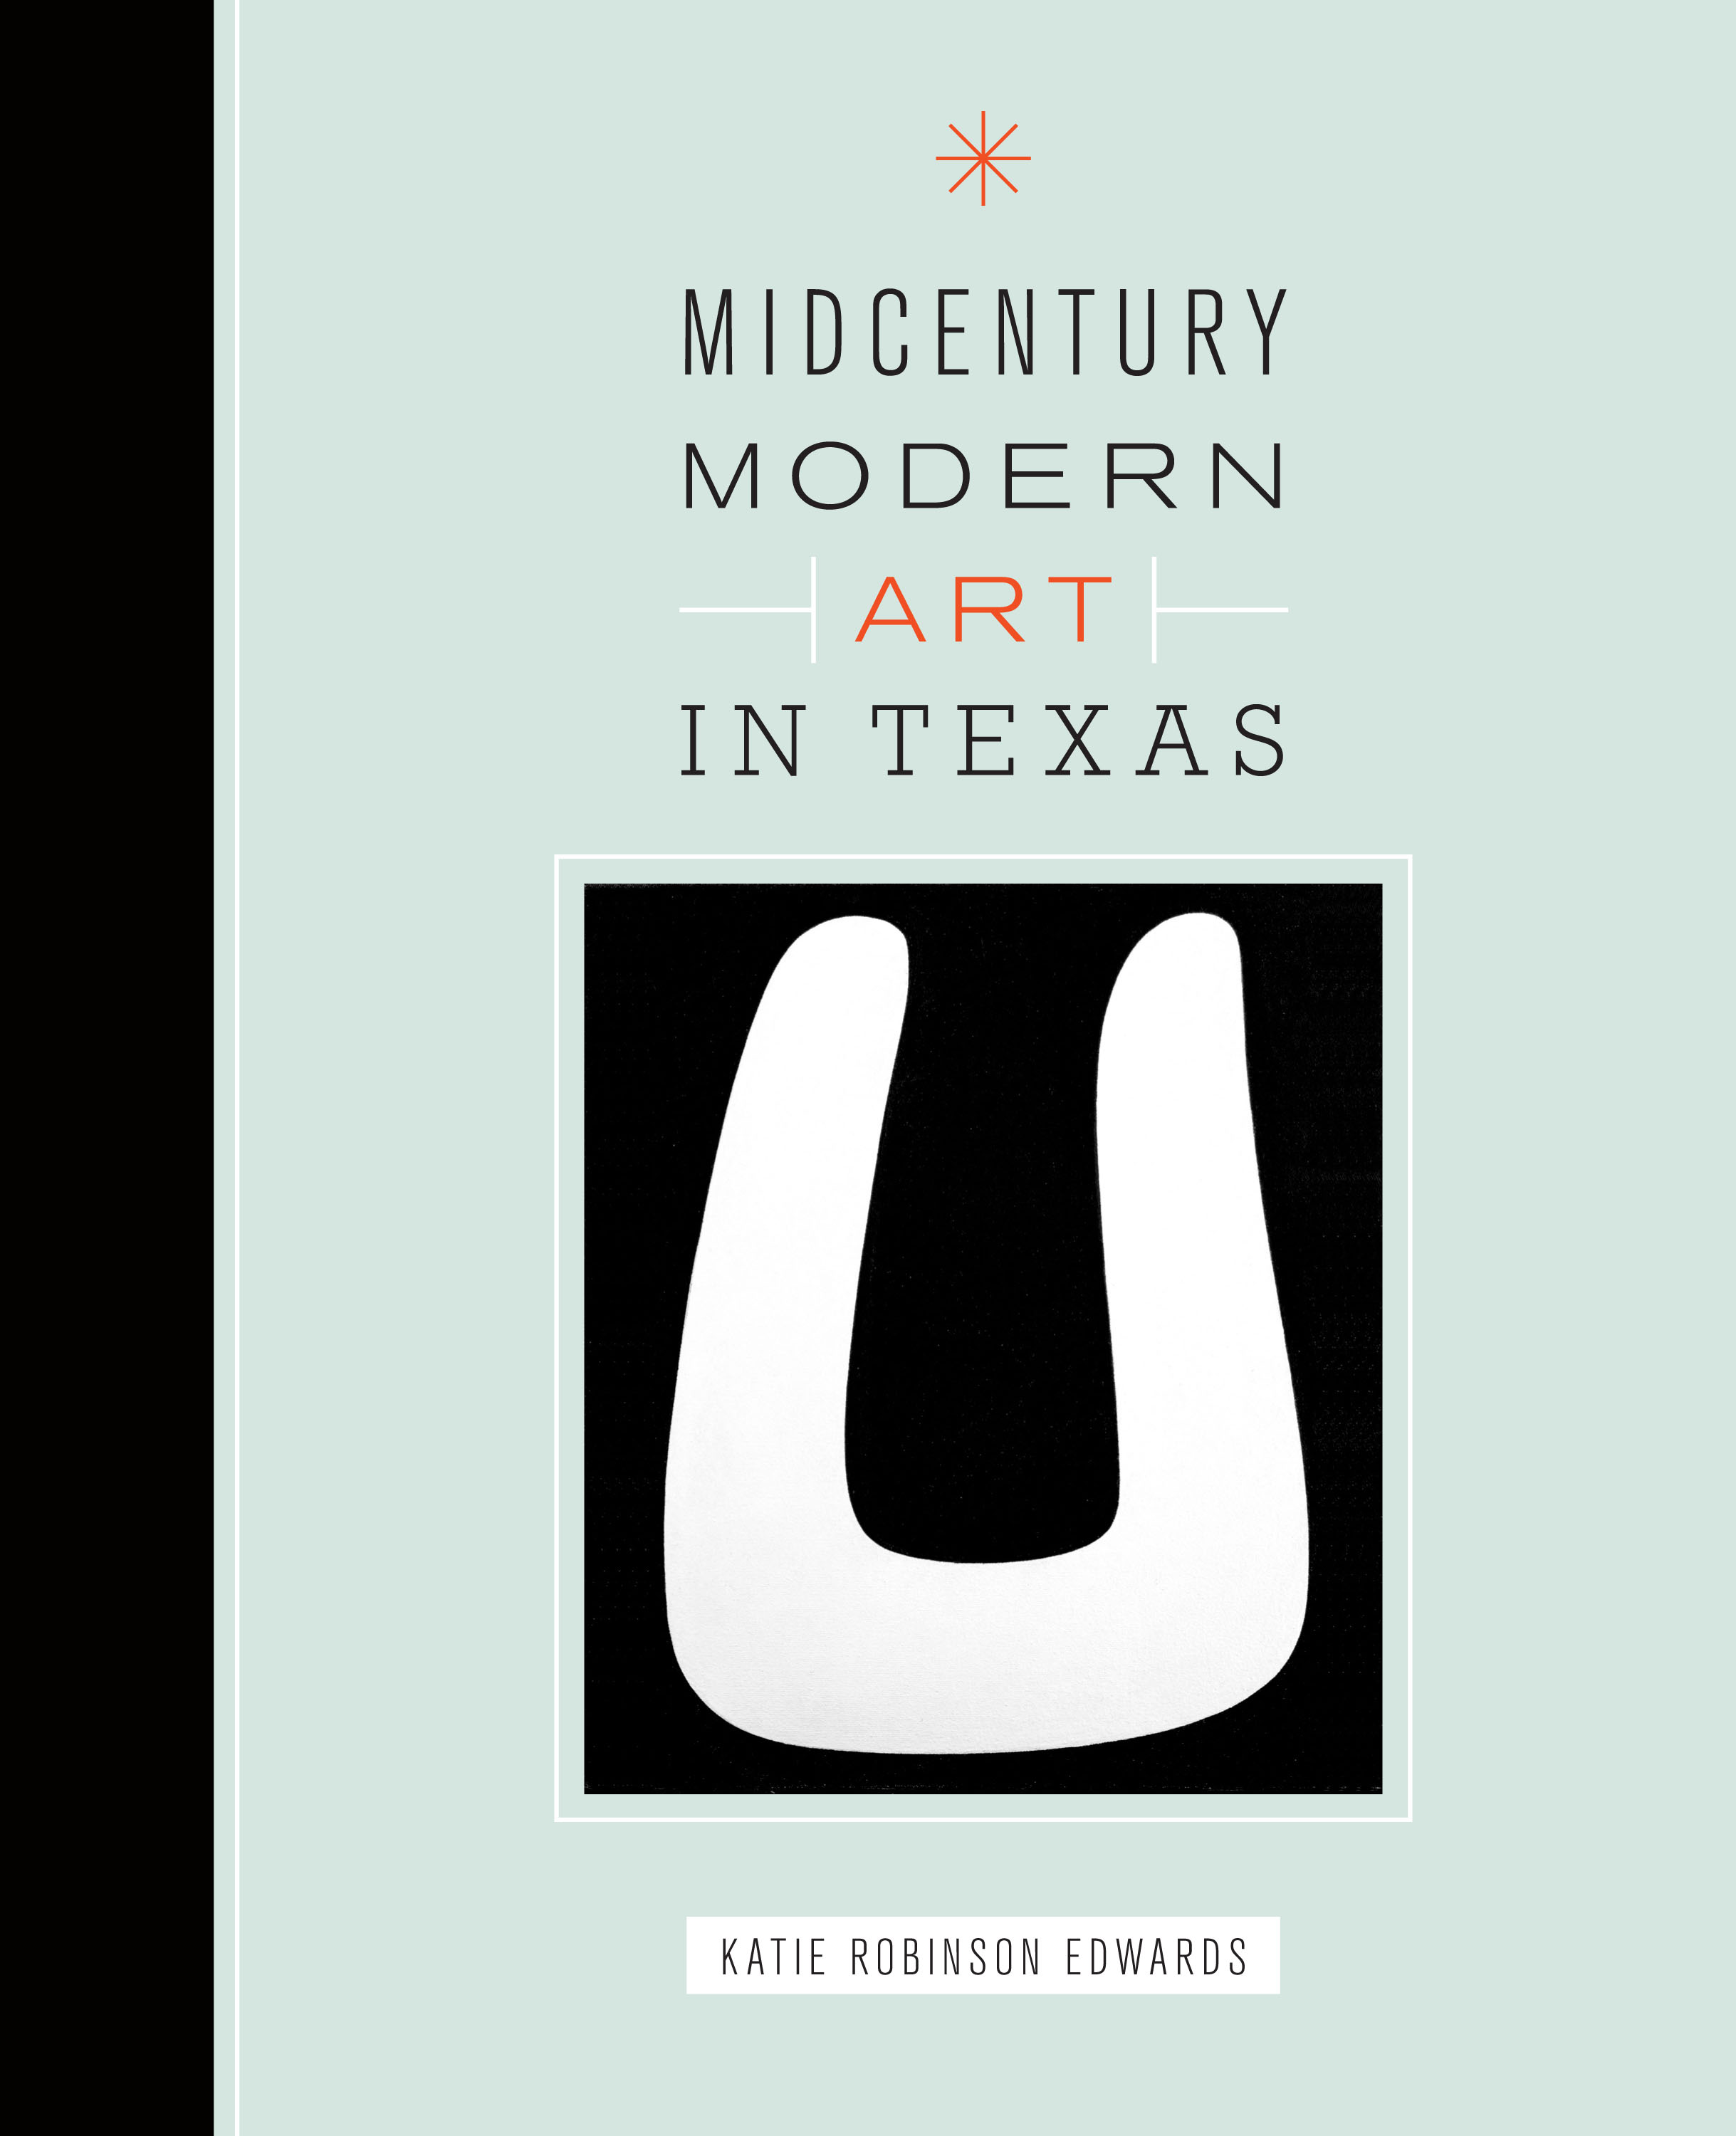 Cover of Midcentury Modern Art in Texas